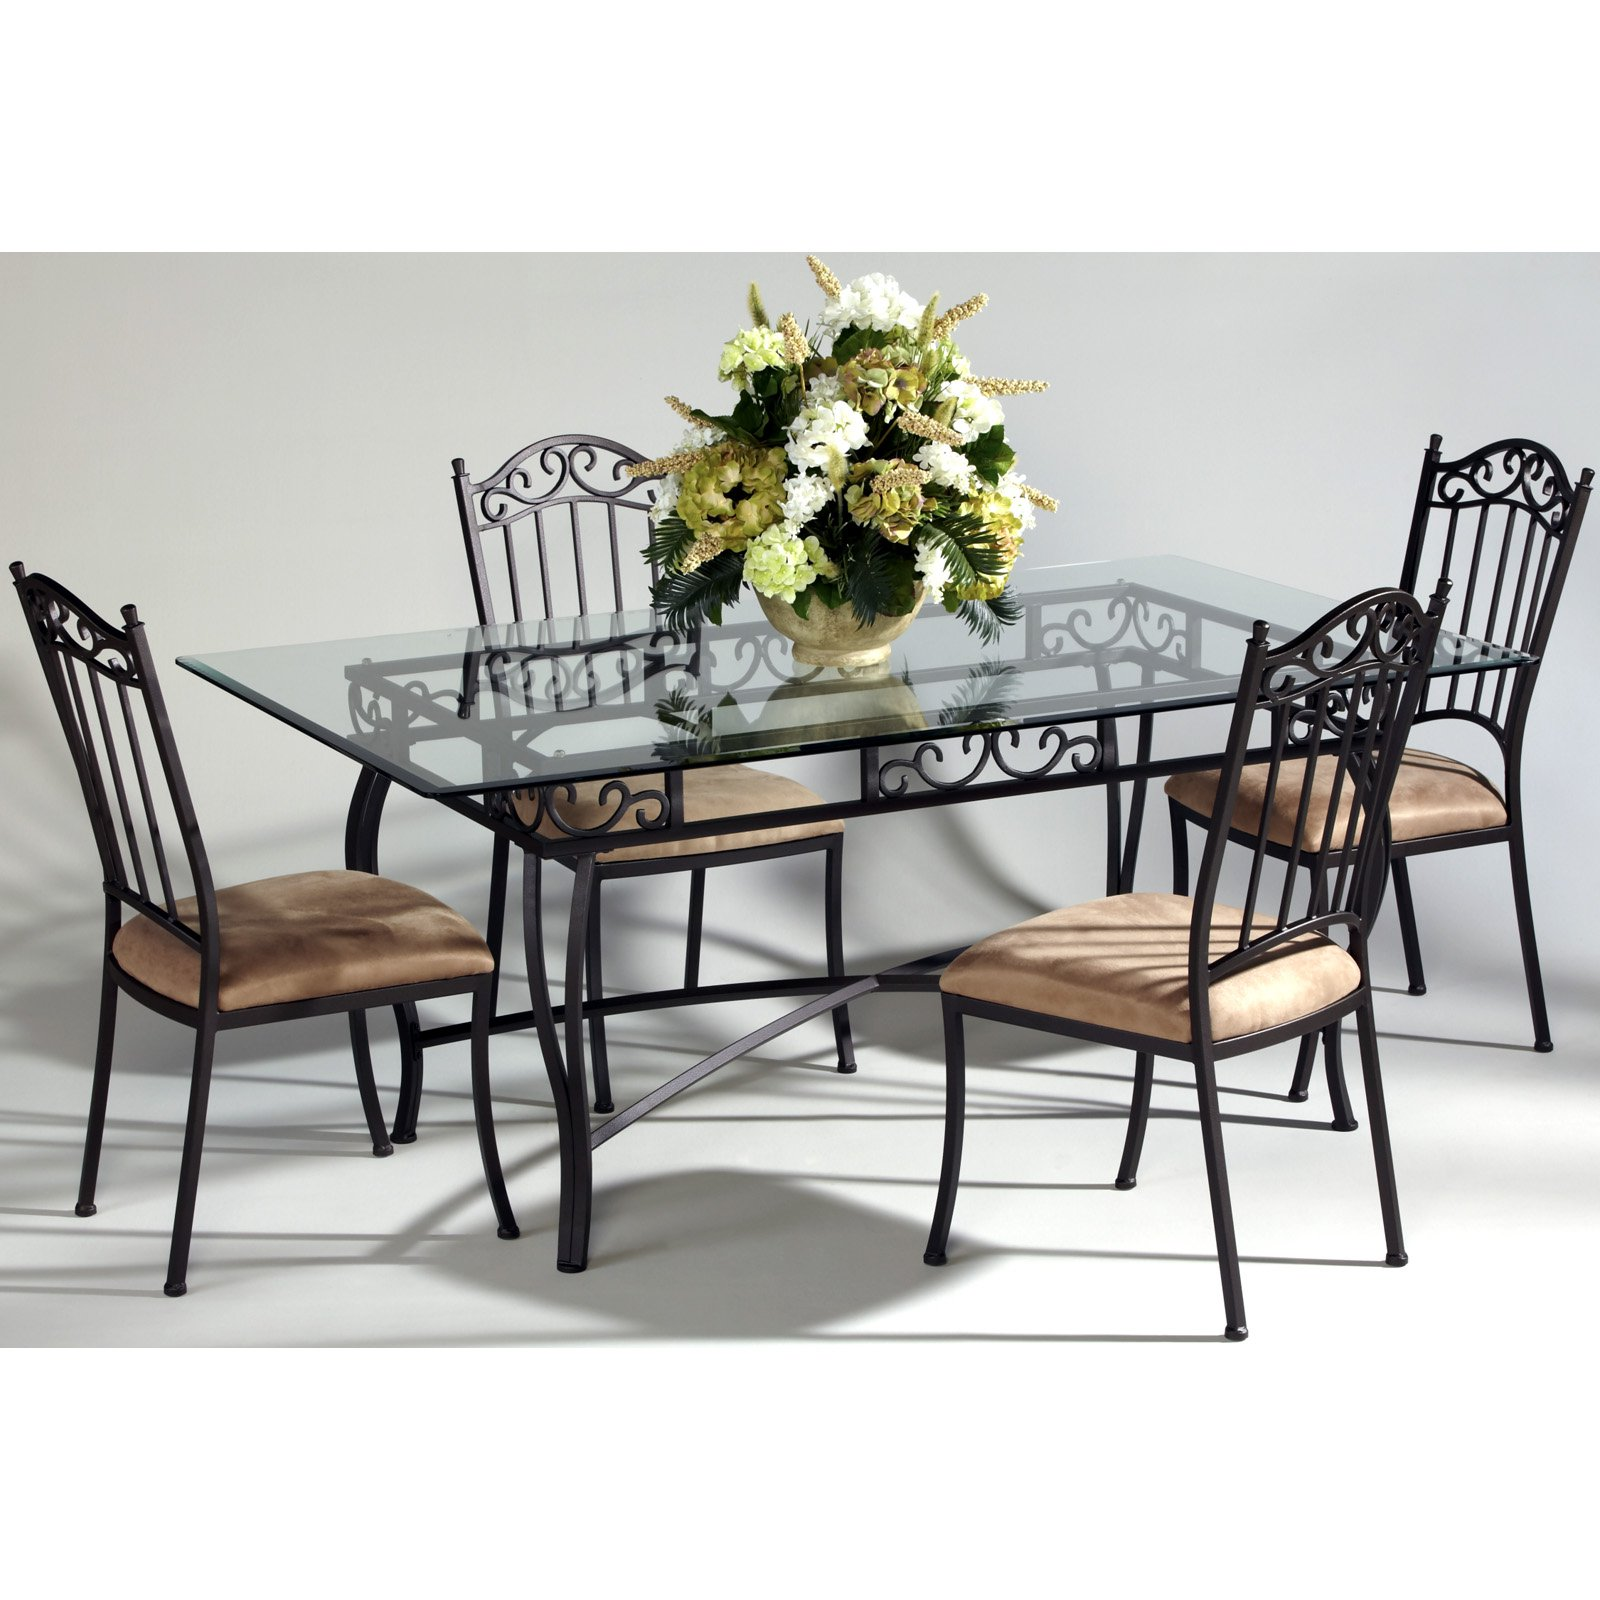 Chintaly Bethel Rectangular Wrought Iron Dining Table With Glass Top Com